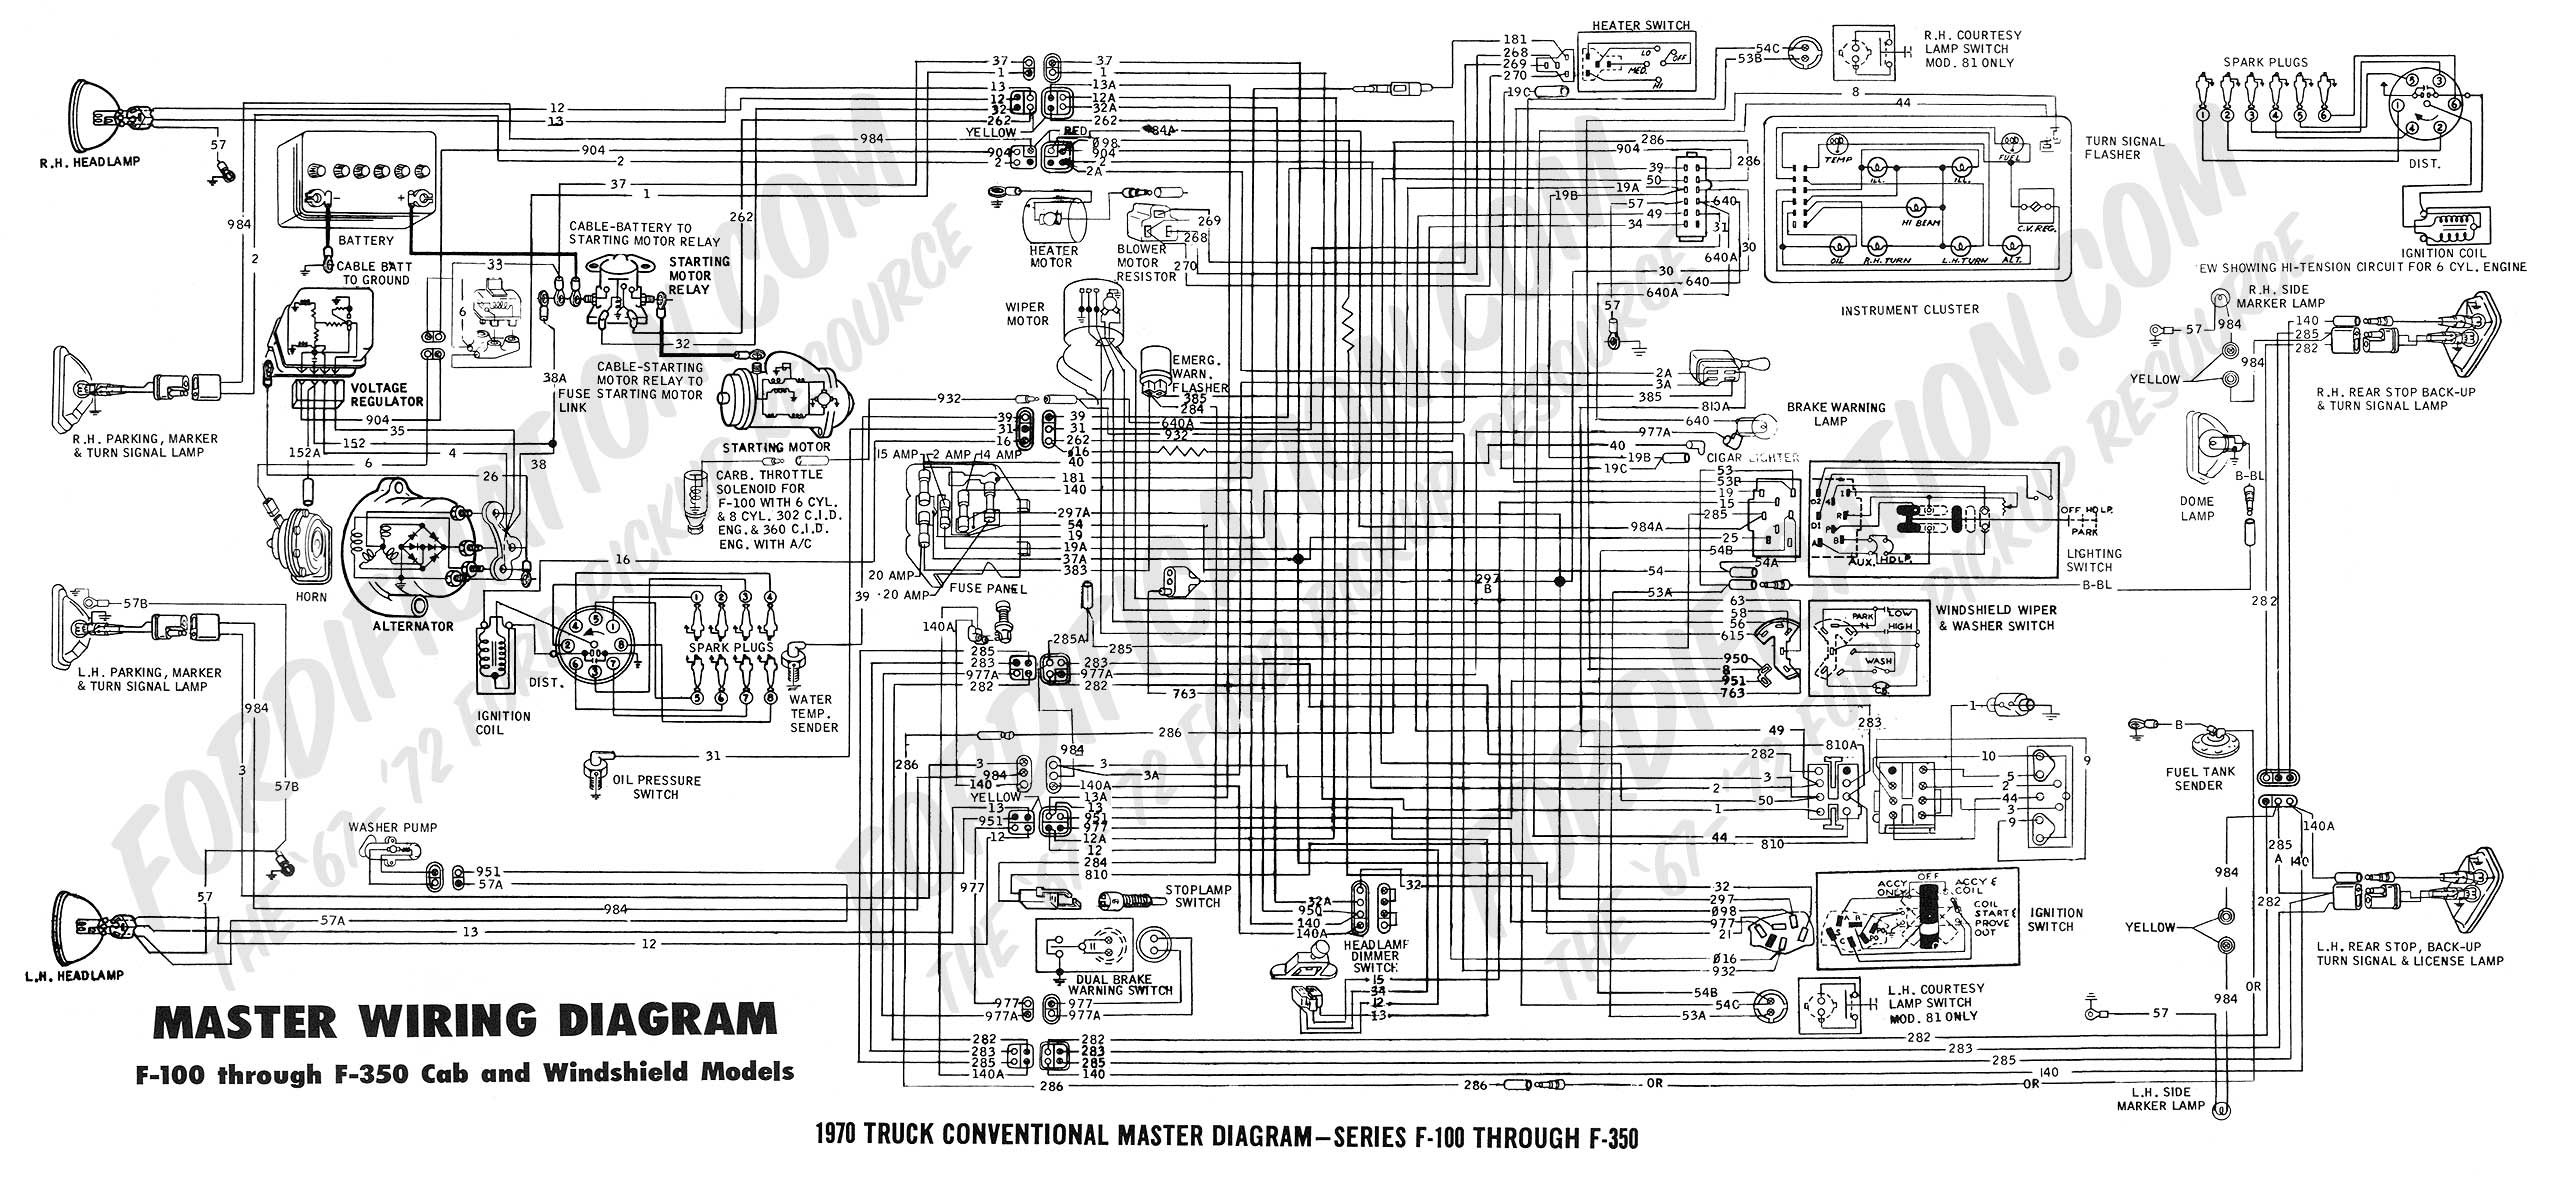 f250 wiring diagrams owner manual \u0026 wiring diagram 1975 Ford F-250 Wiring Diagram